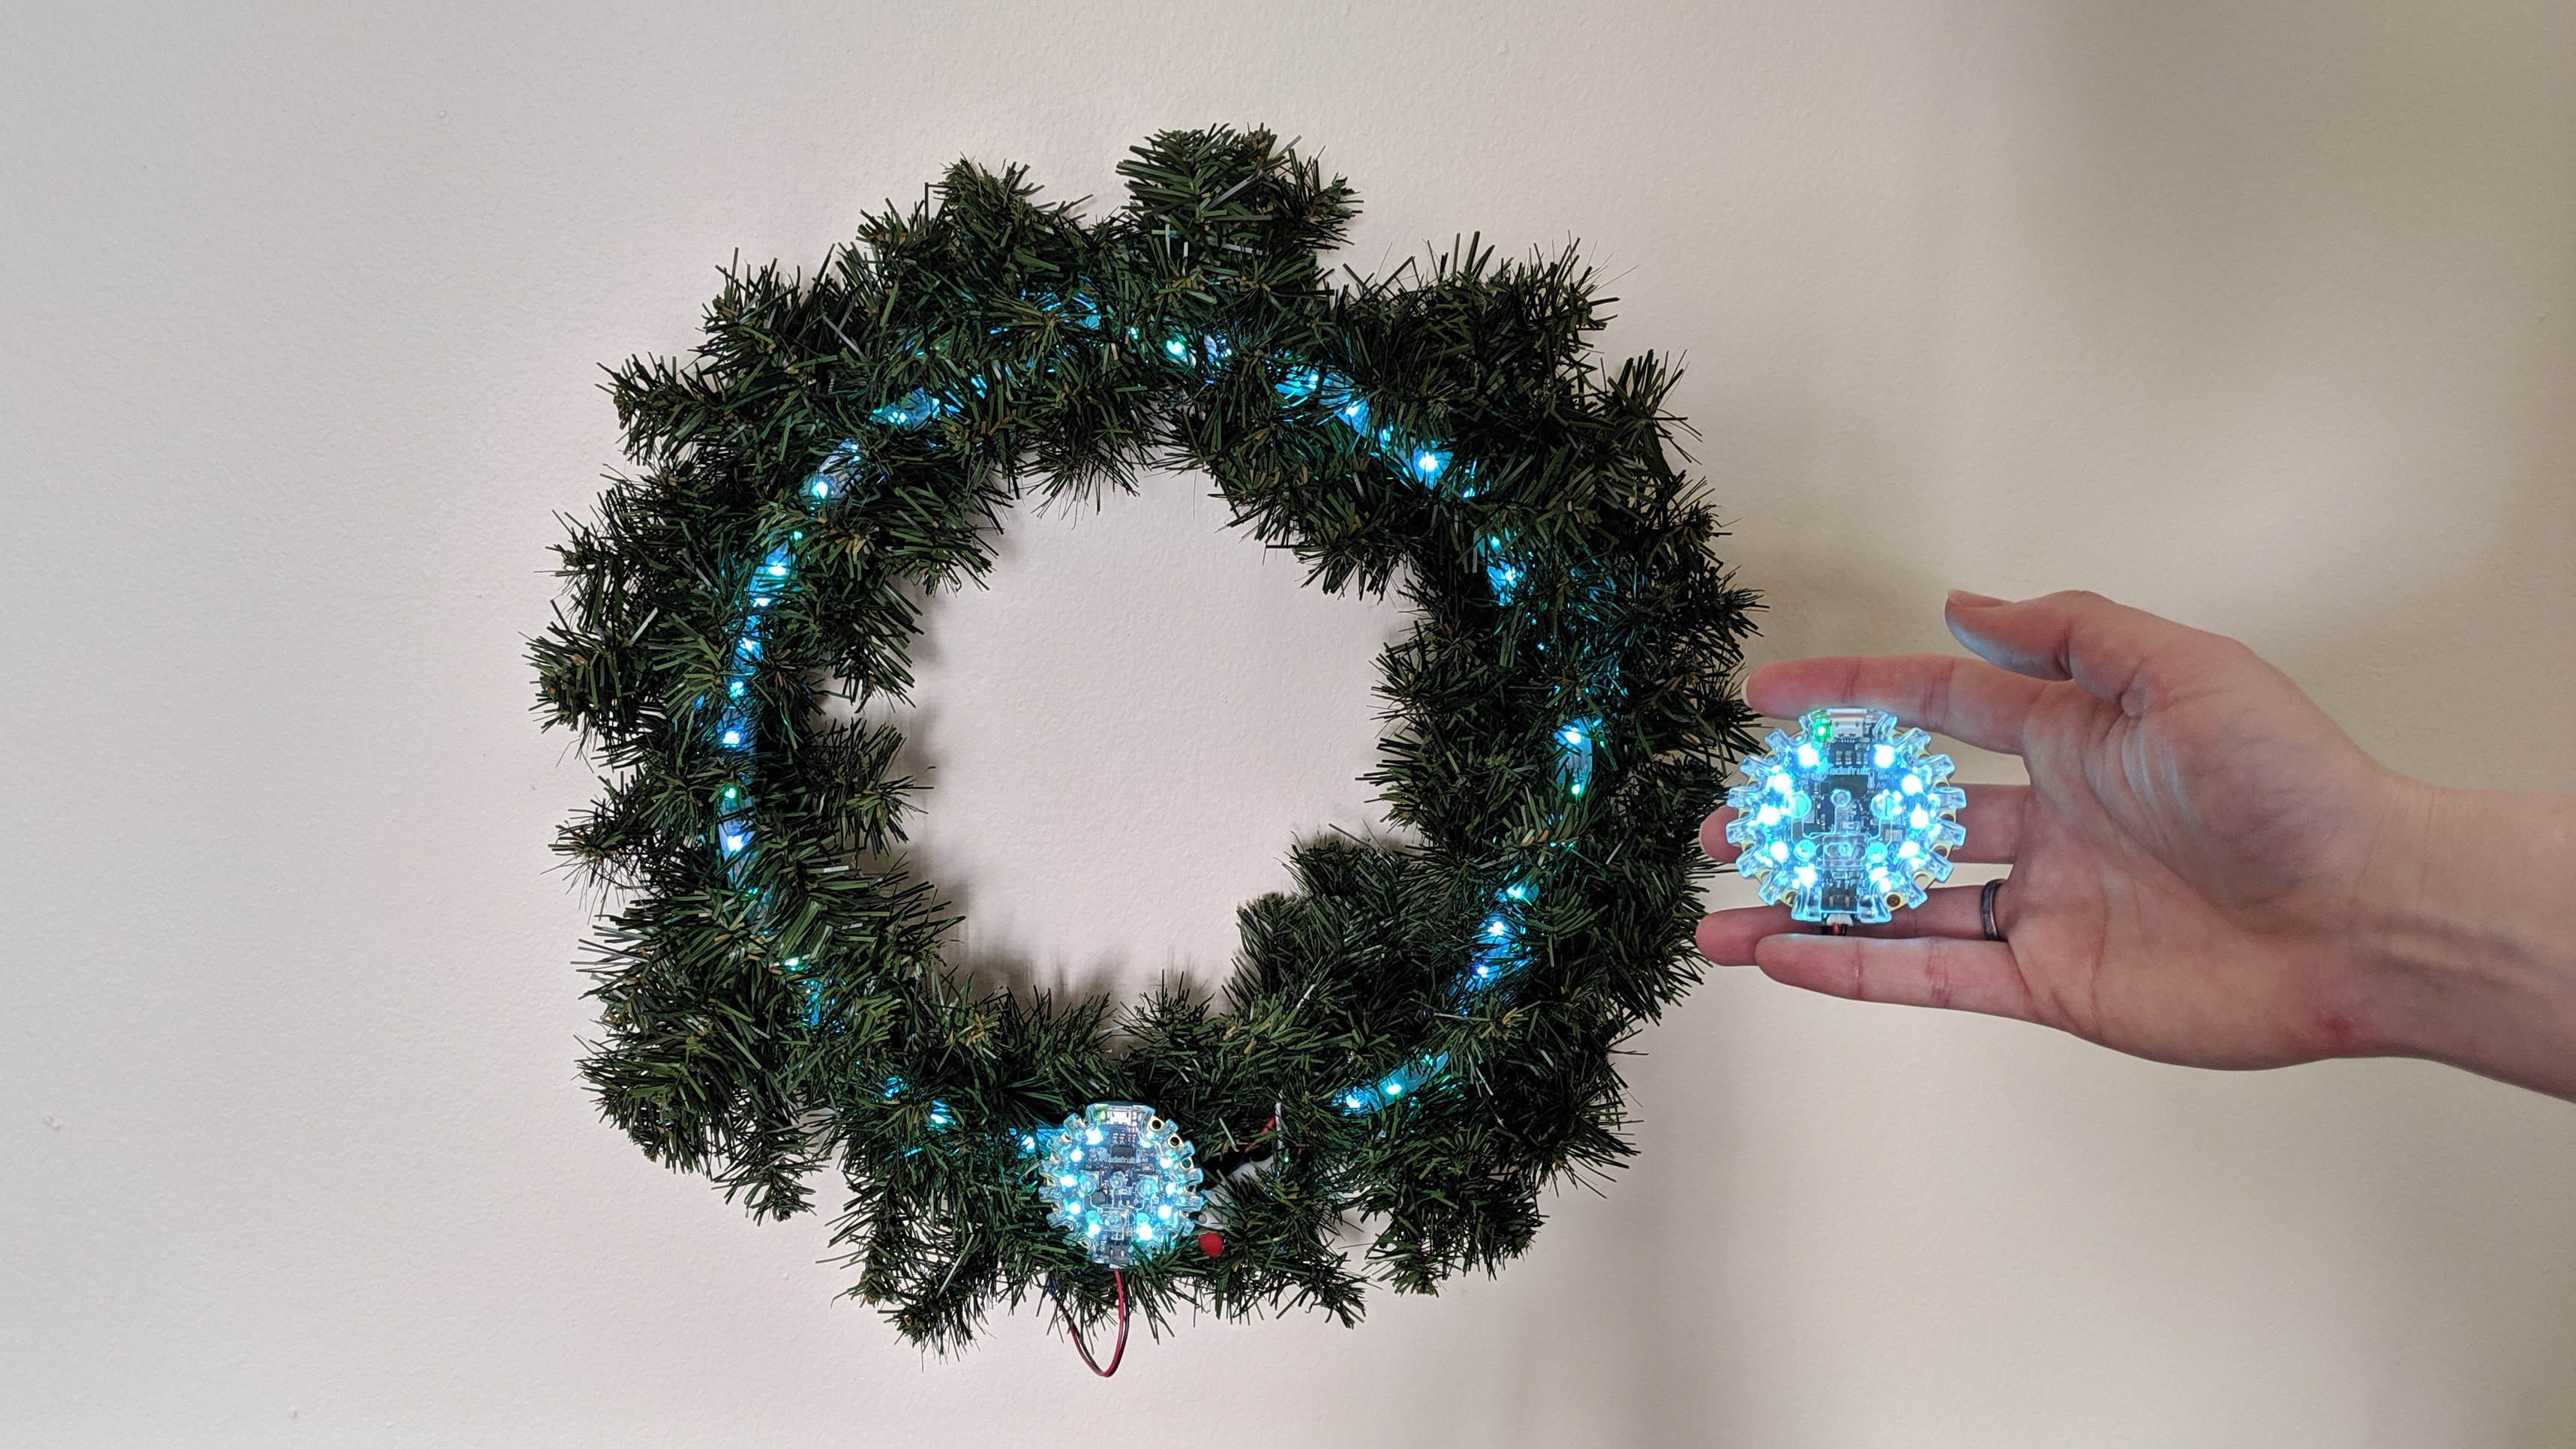 leds_CPB_NeoPIxel_Controller_Wreath_and_Controller_Lit_Up.jpg